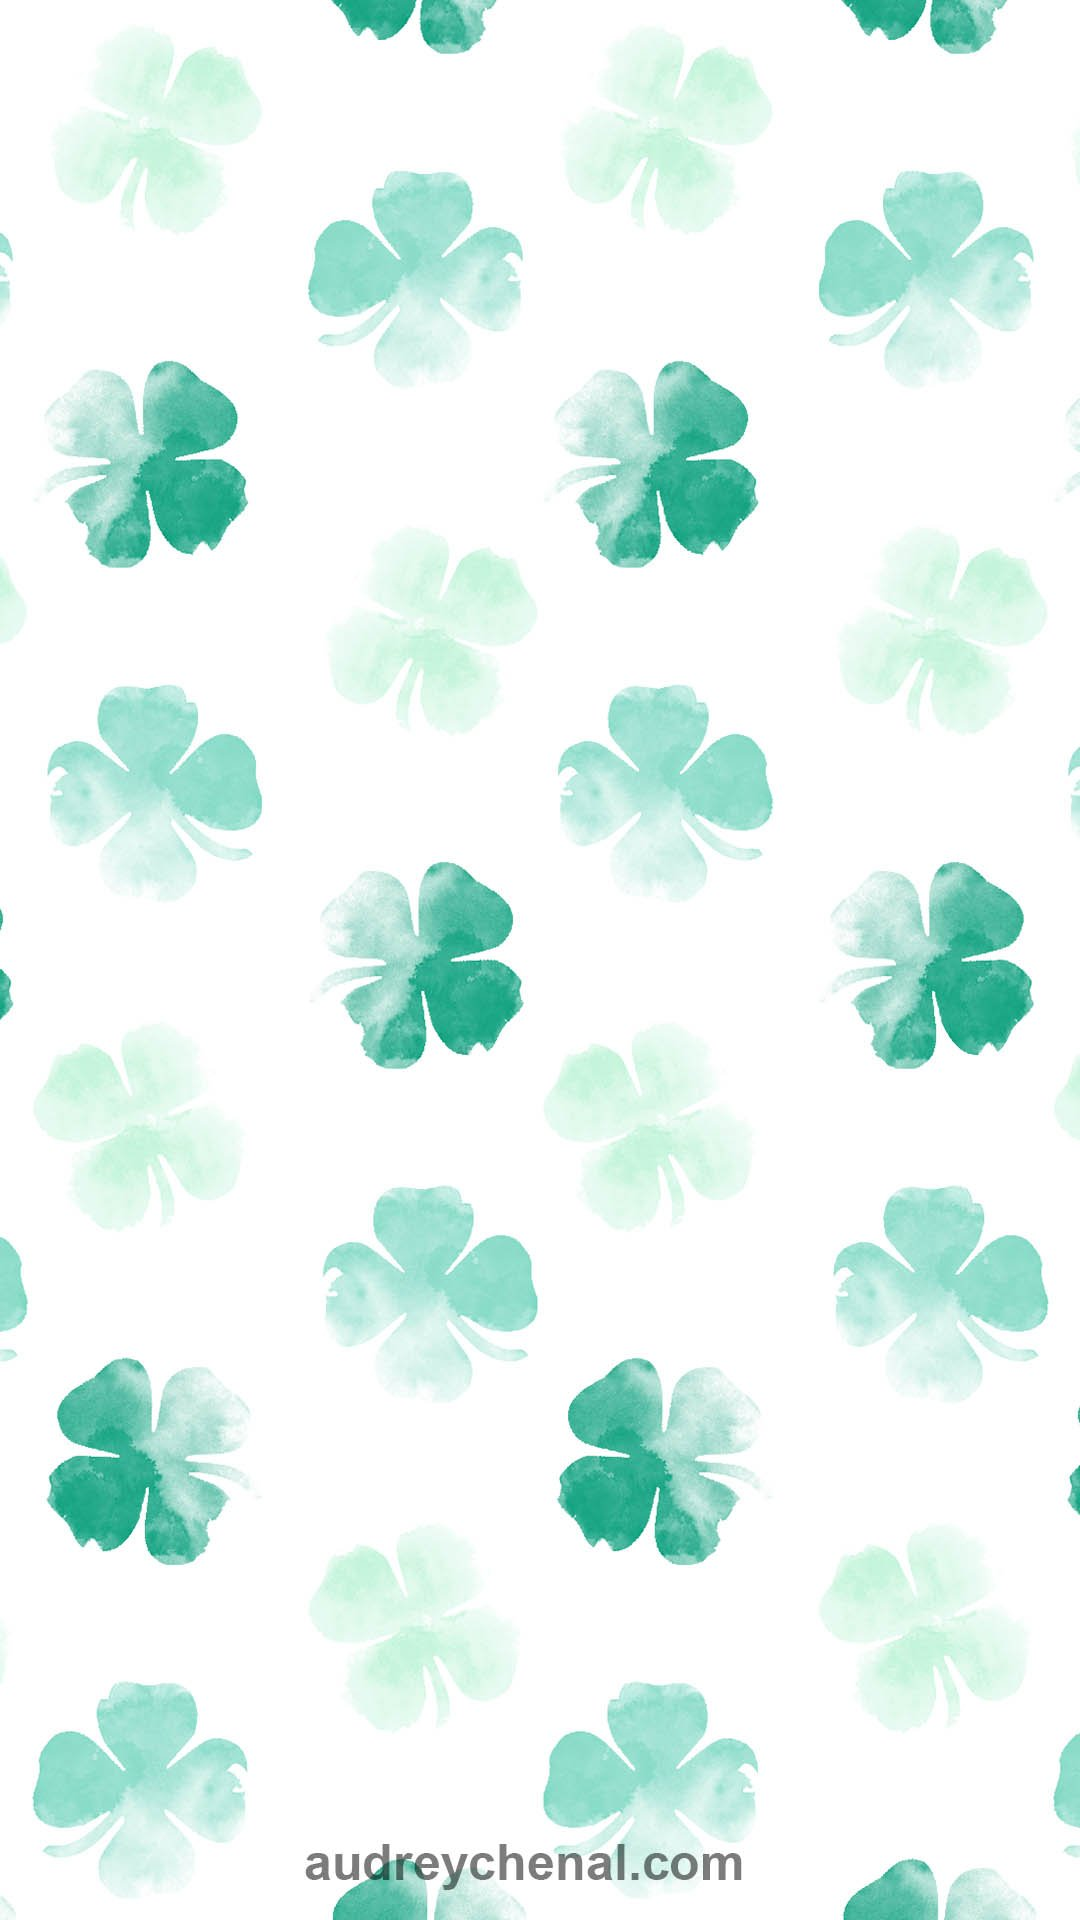 st patrick lucky green watercolor shamrock clovers free wallpaper by Audrey Chenal